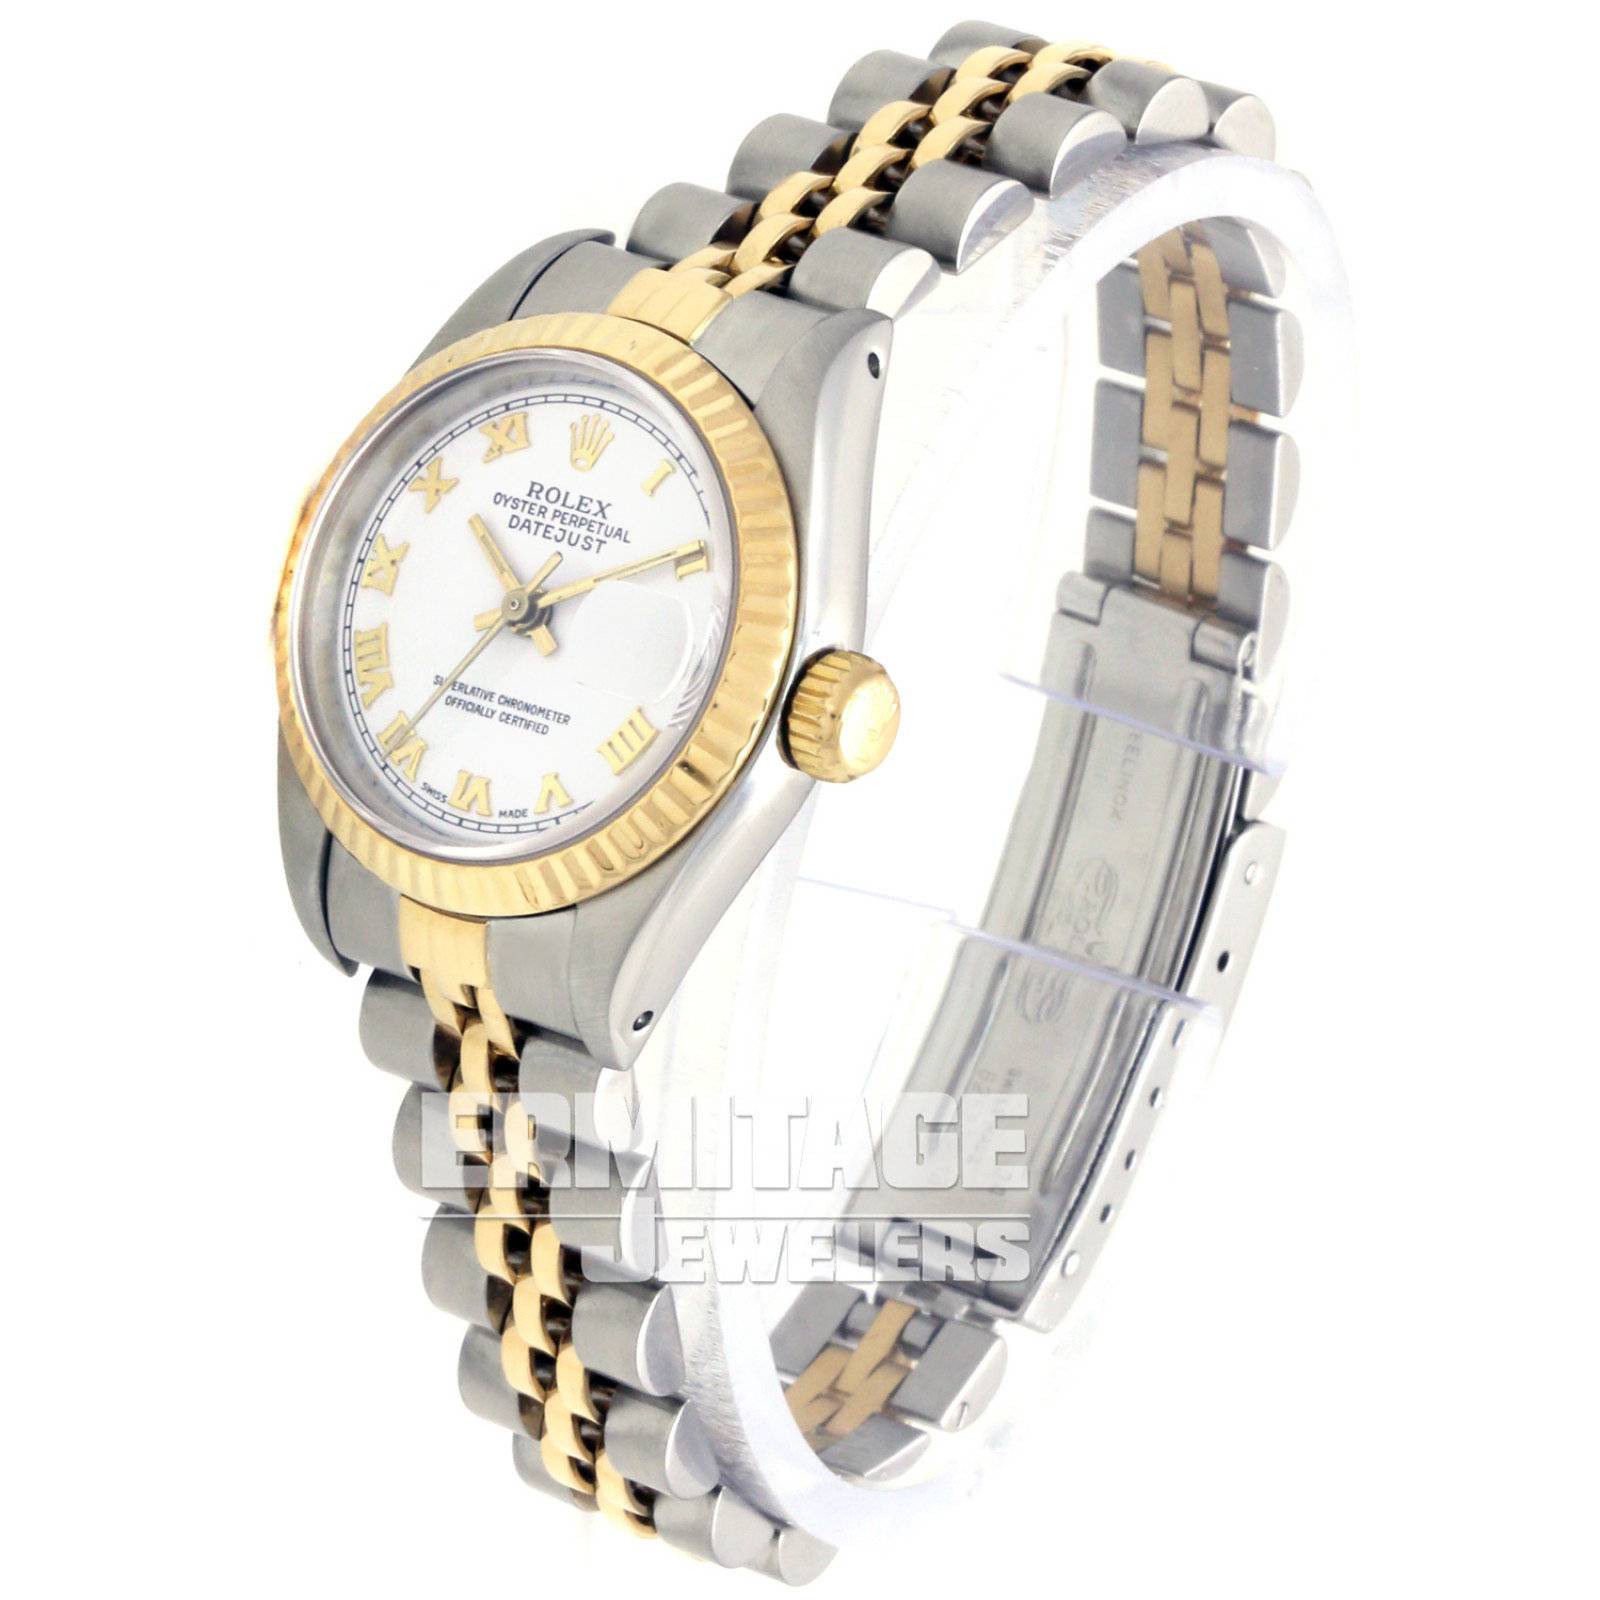 Rolex Datejust 69173 with White Dial